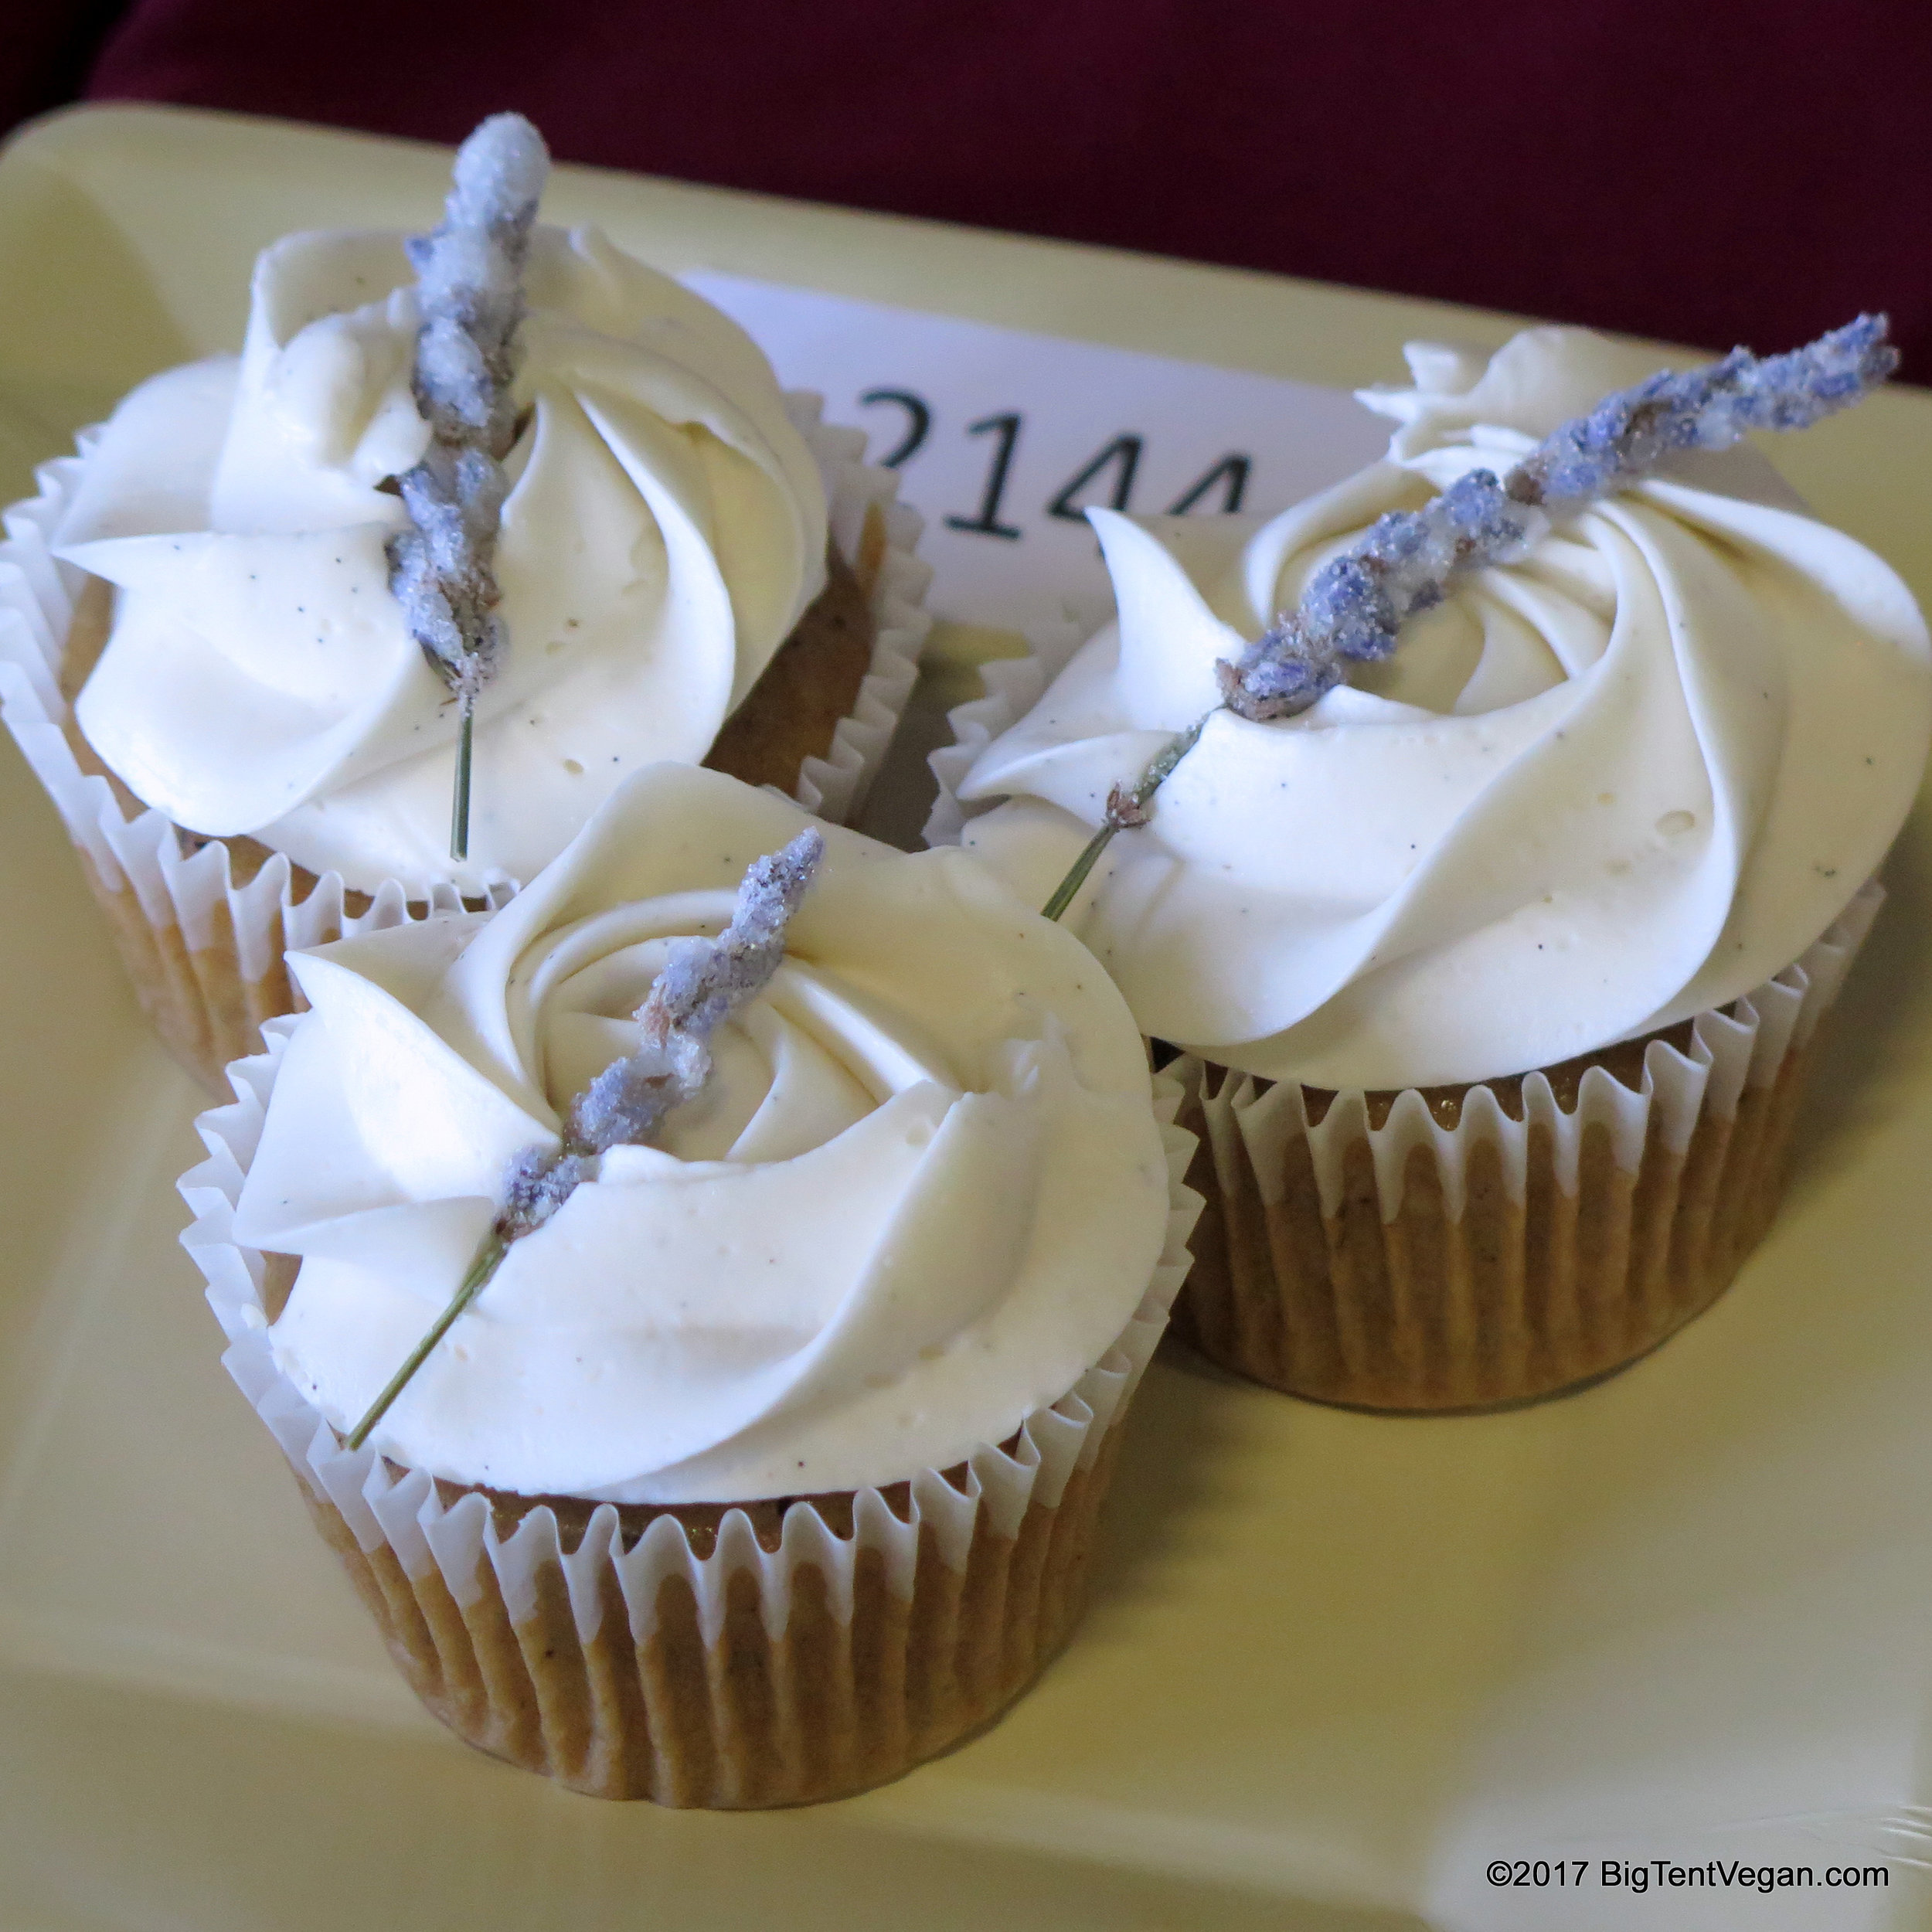 1st PLACE:       Leanne Winslow     Vanilla Earl Grey Cupcakes with Lavender Vanilla Swiss Meringue Buttercream